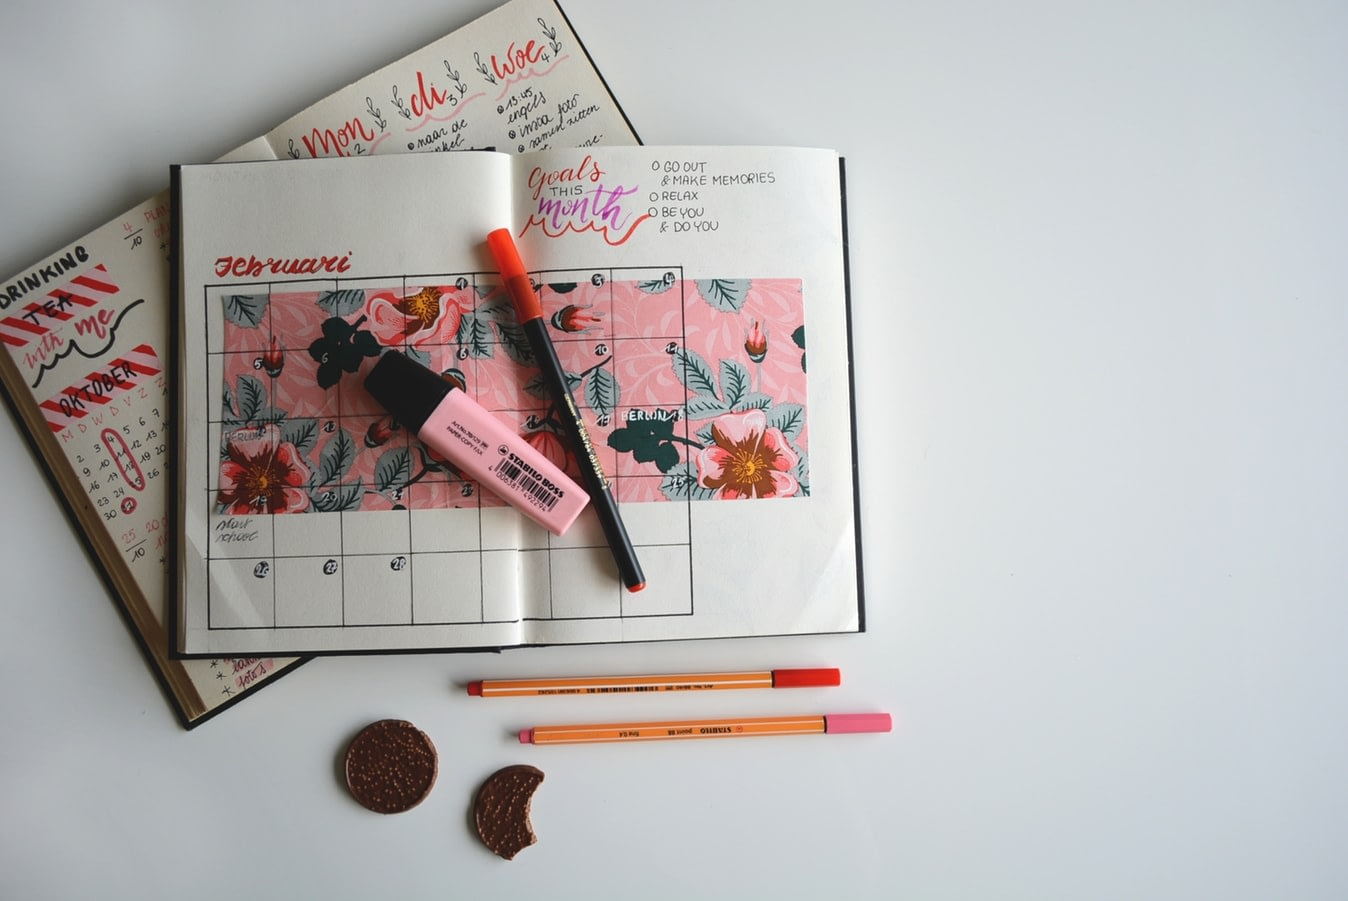 A goal calender open on top of a daily planner with a highlighter and pencils